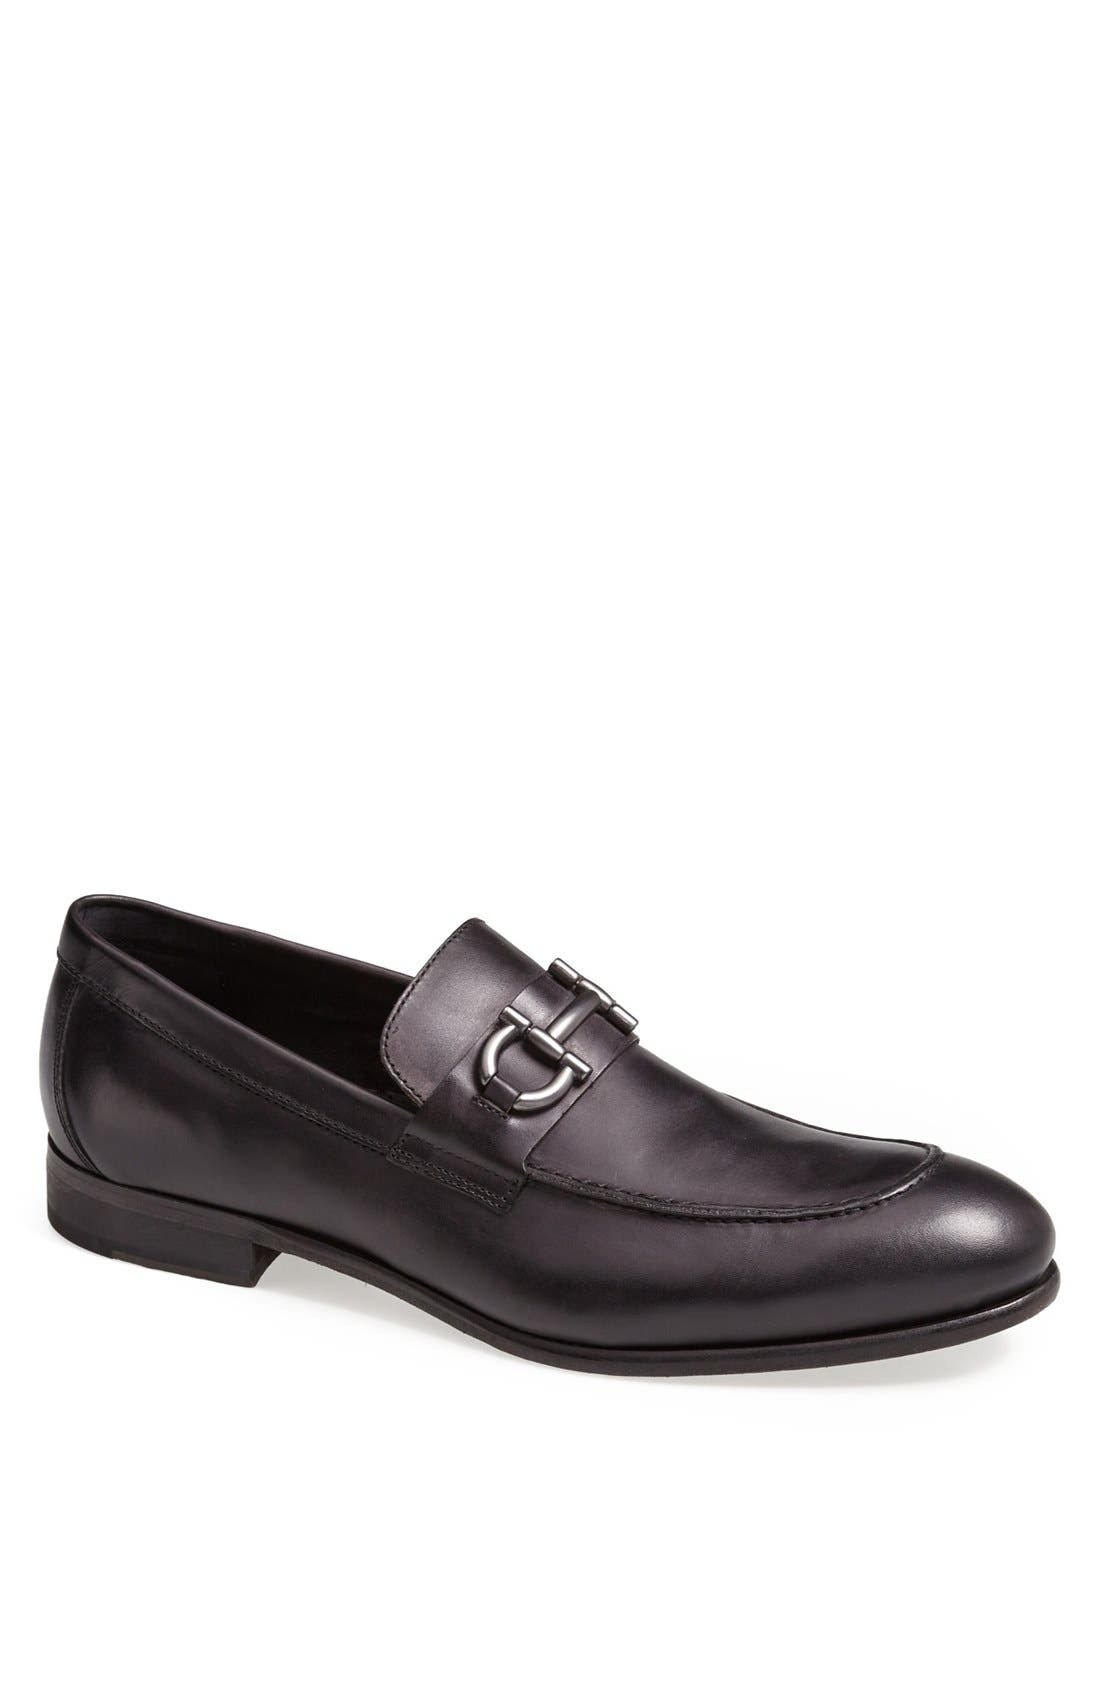 Alternate Image 1 Selected - Kenneth Cole New York 'Heat It Up' Bit Loafer